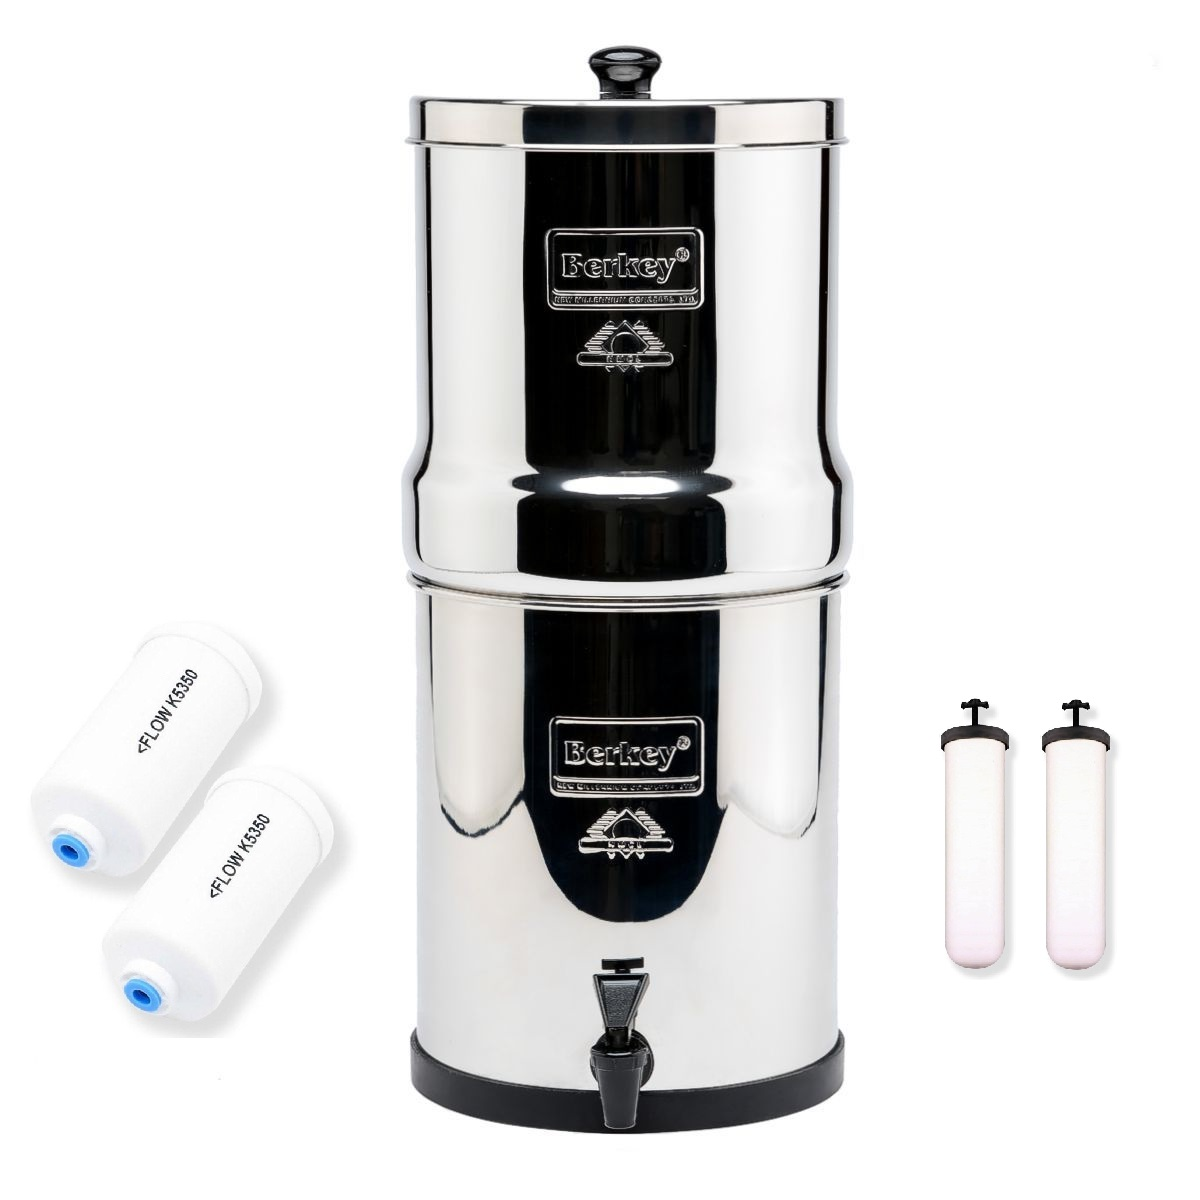 Big Berkey Water Filter System 2.2 Gal. with 2 PF4 Filters and 2 9 Inch Ceramic Filters